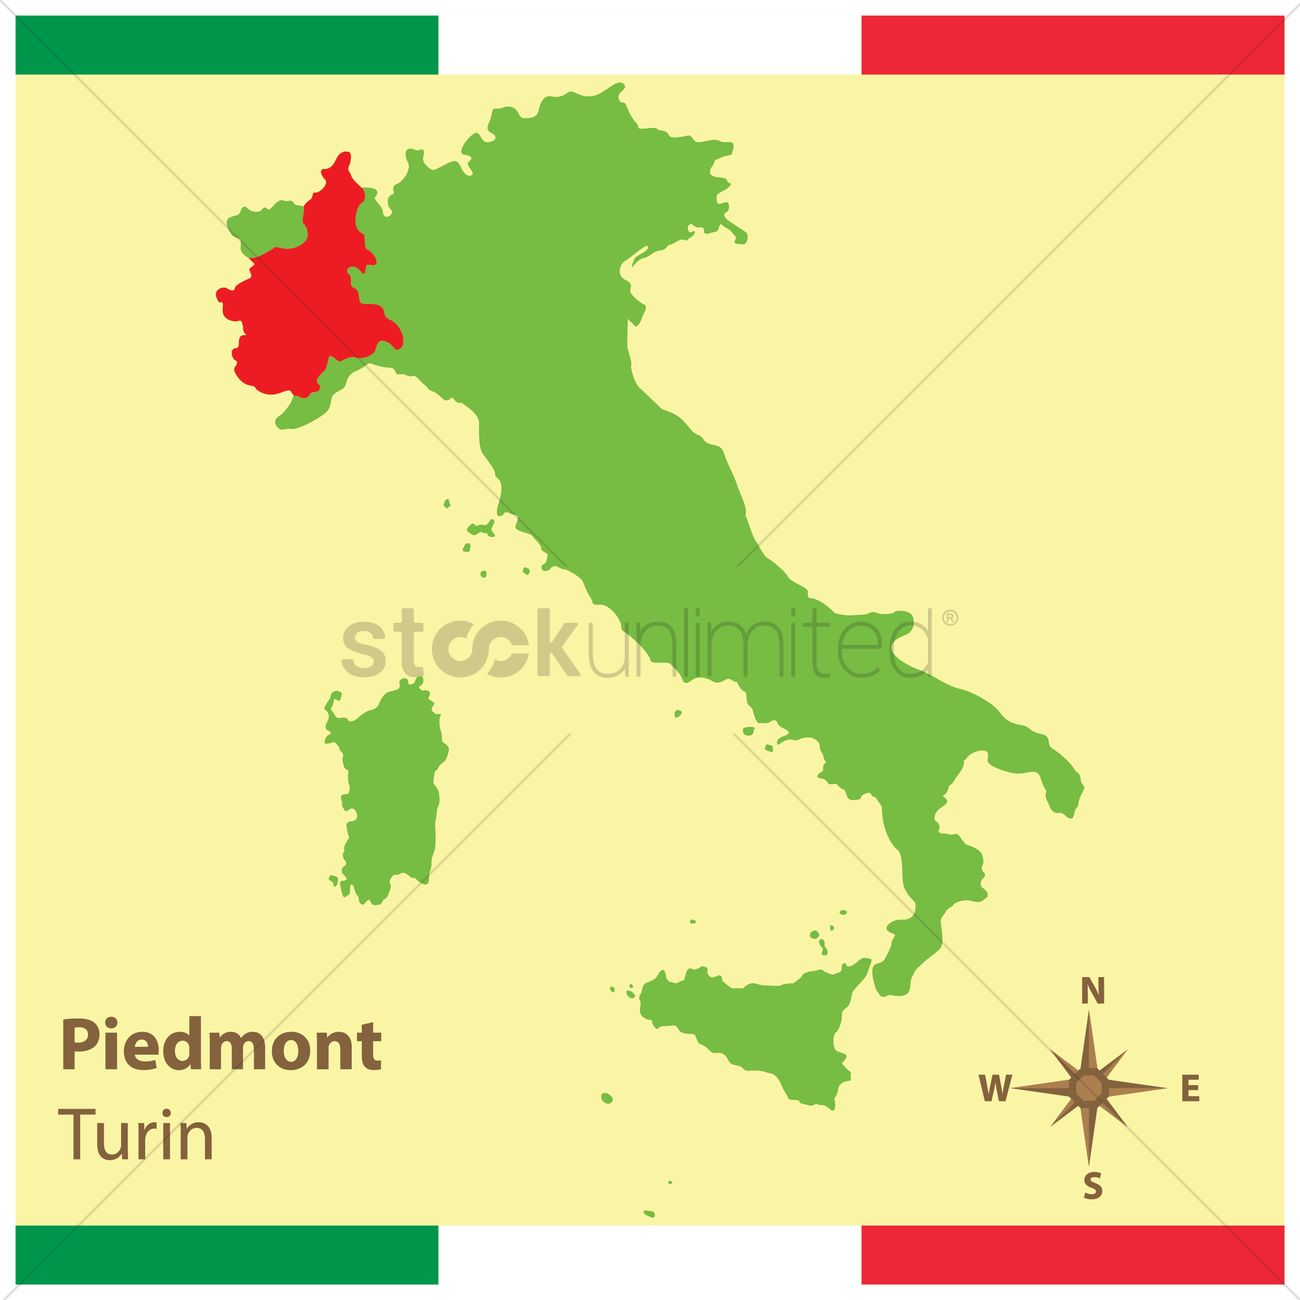 Piemonte On Italy Map Vector Image 1583936 Stockunlimited